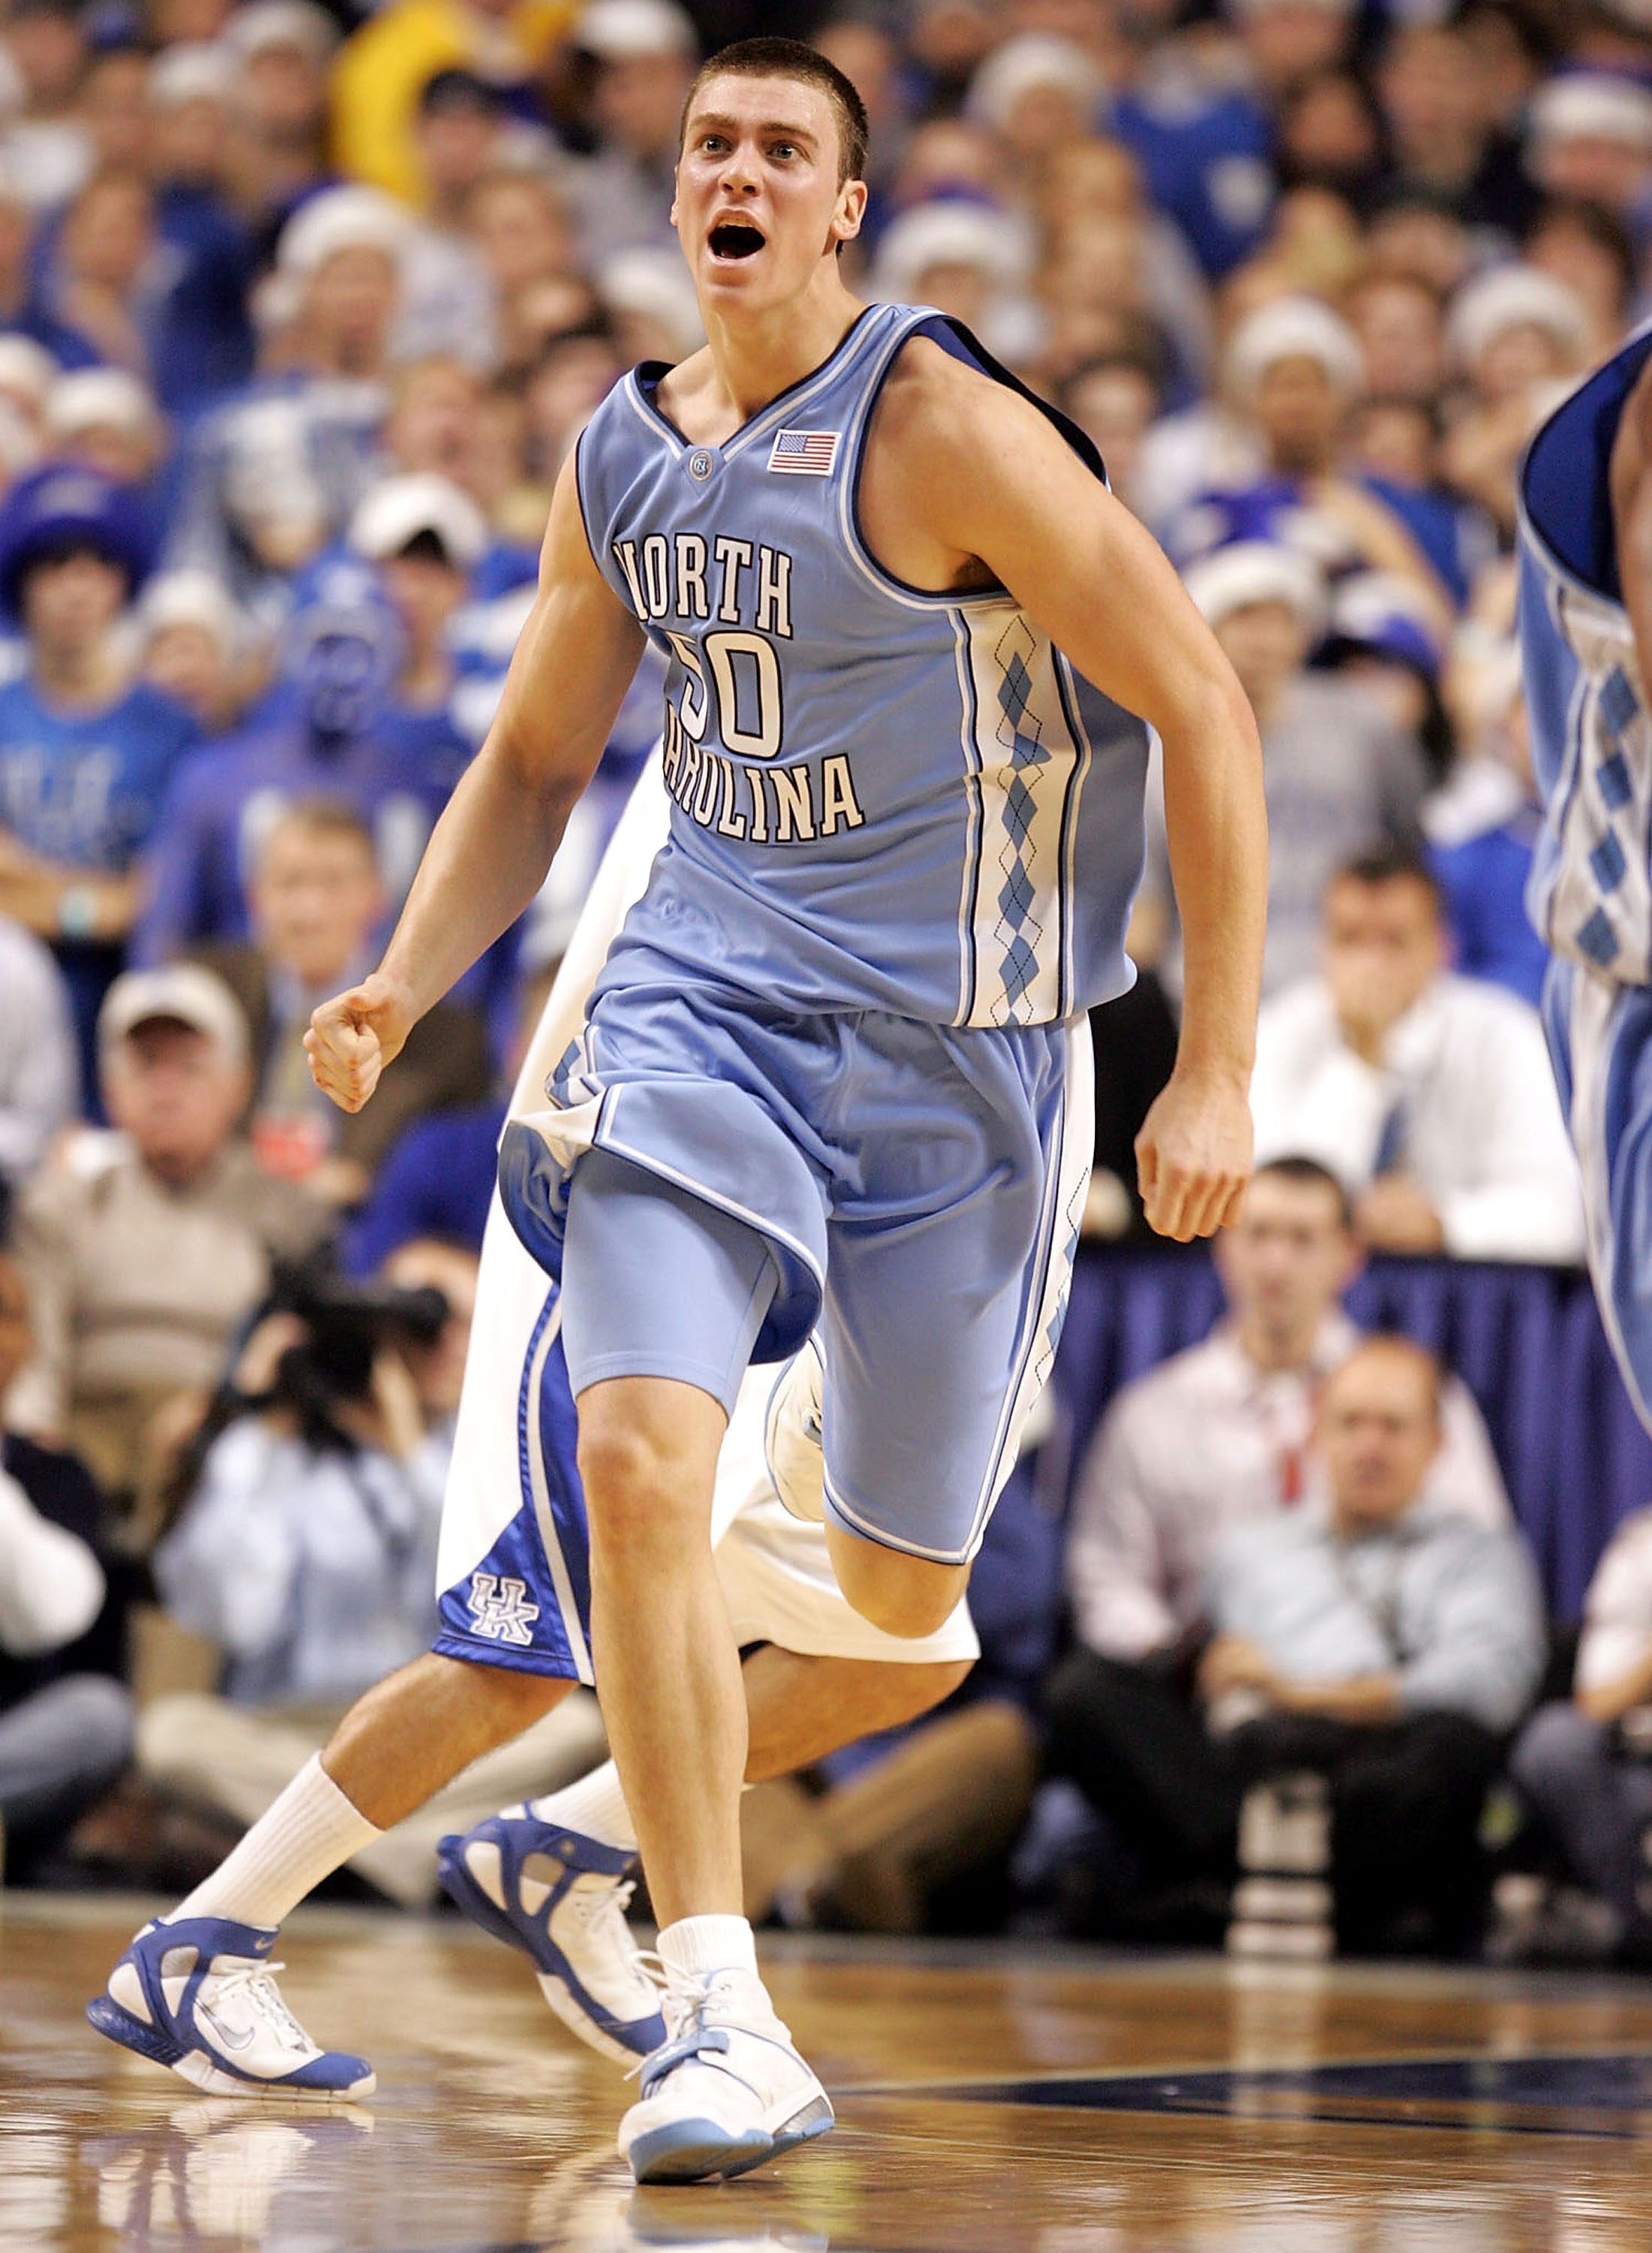 North Carolina Tar Heels v Kentucky Wildcats